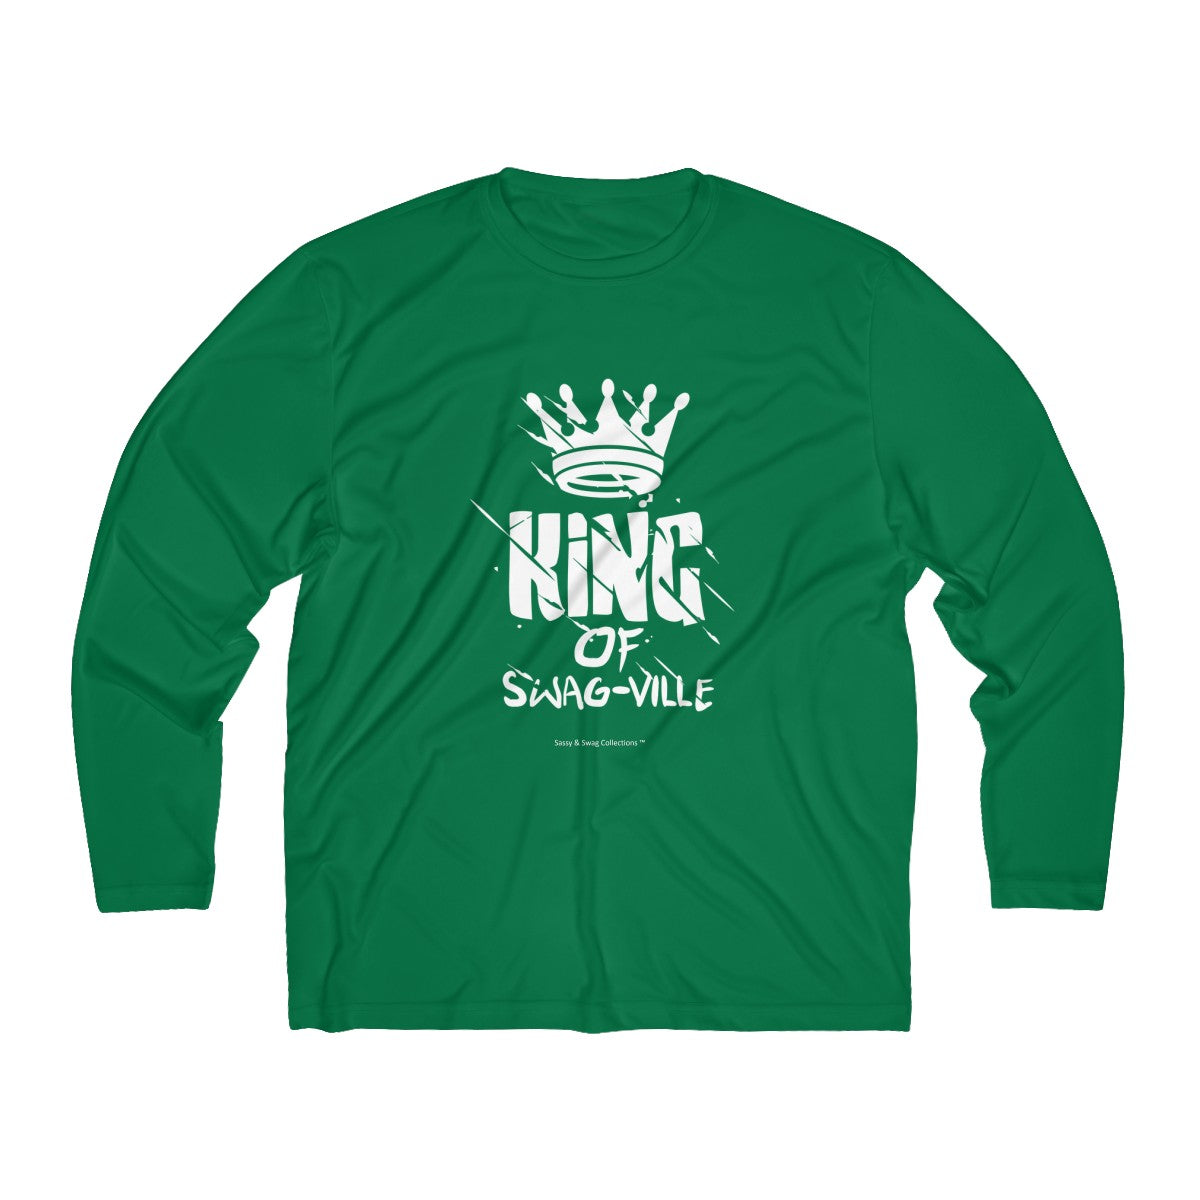 Sassy & Swag Collections - King of Swag-ville Men's Long Sleeve Moisture Absorbing Tee